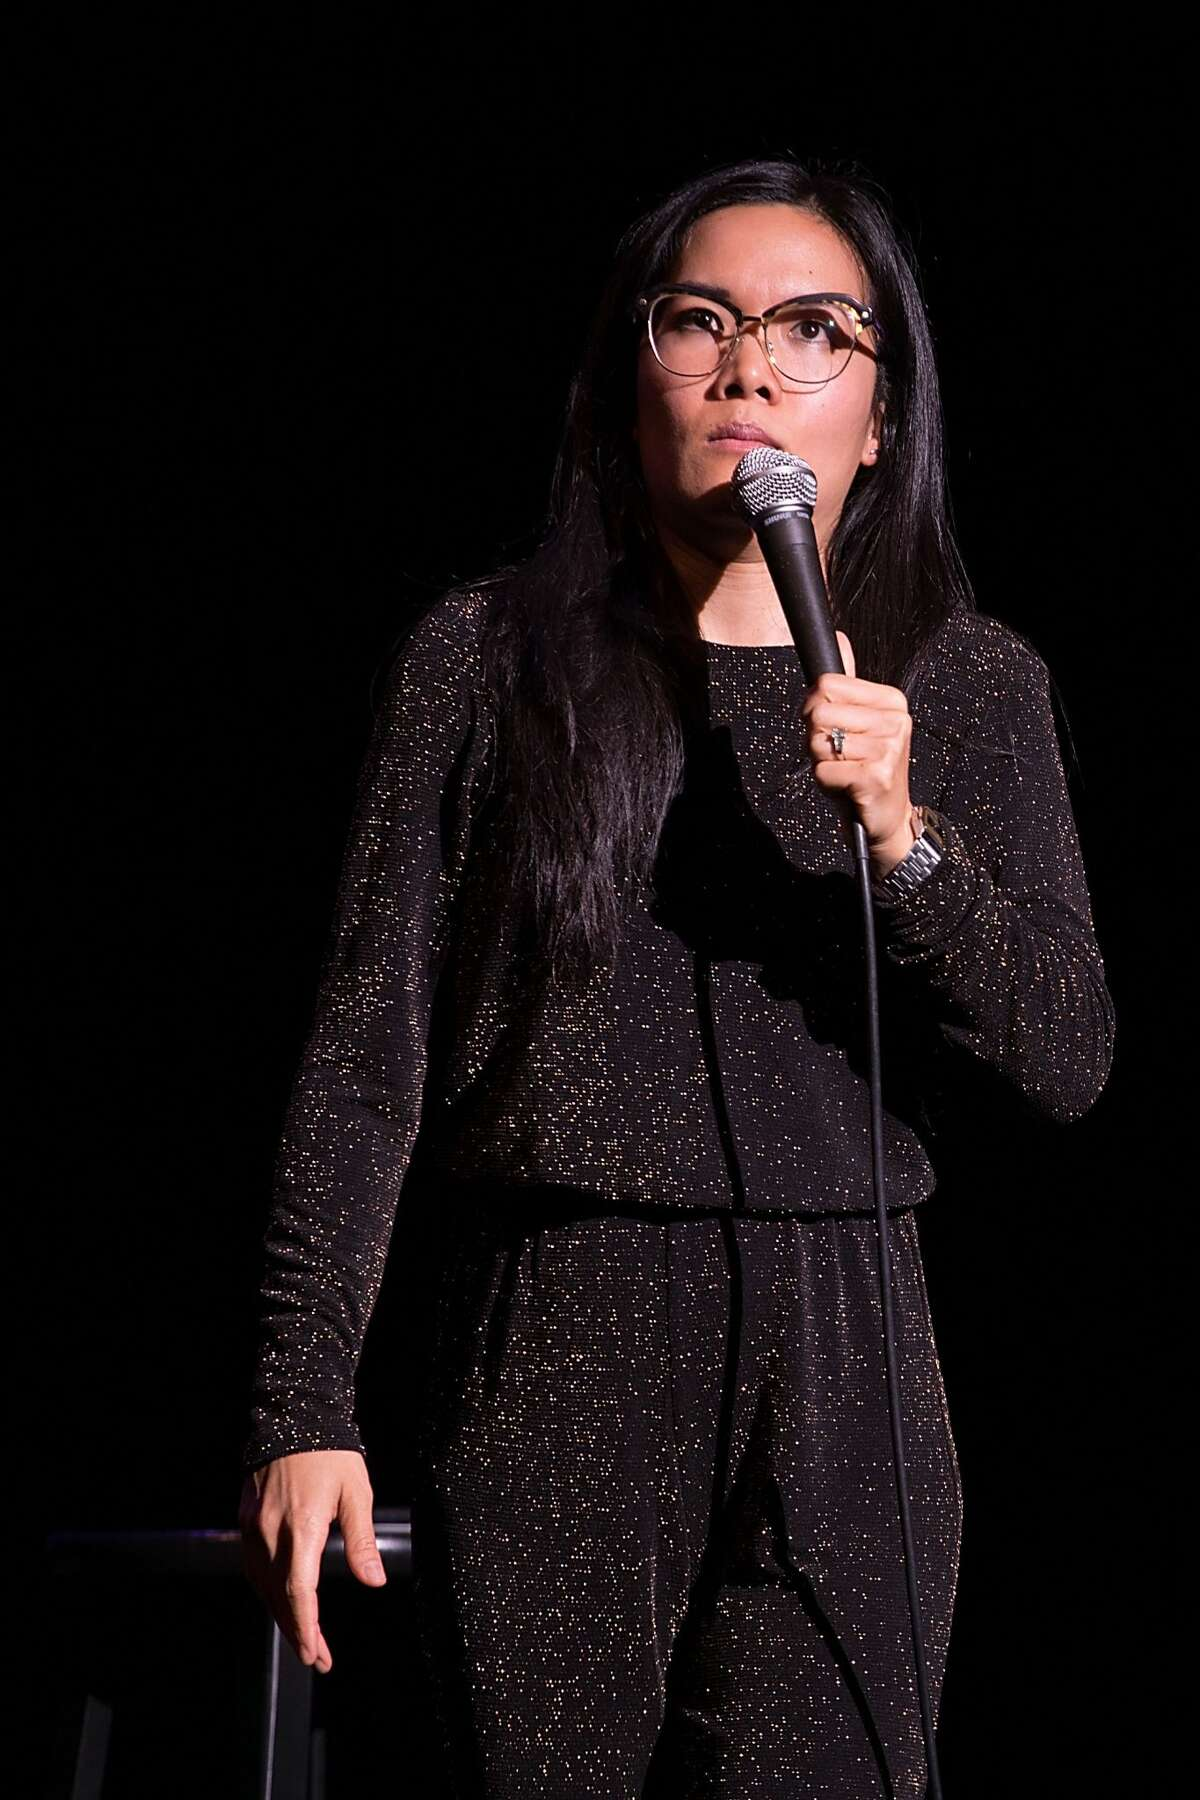 Ali Wong:The comedian will be performing at the Revention Music Center on Friday, Sept. 15 at 8 p.m. More Details:www.reventionmusiccenter.com